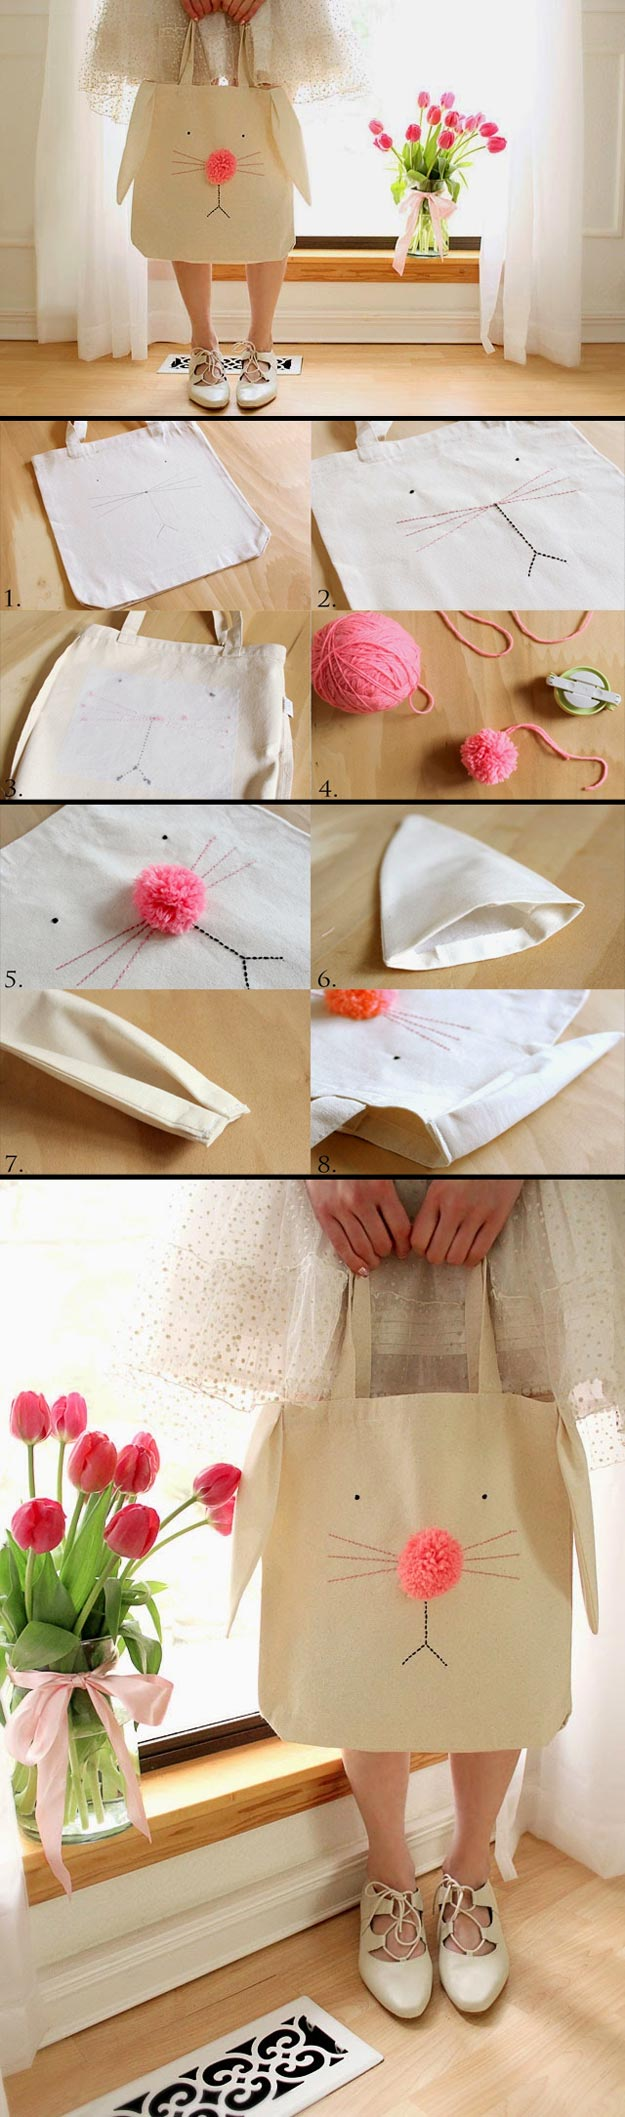 Cheap Crafts - DIY Bunny Tote Bag - Inexpensive Craft Project Ideas for Teenagers, Teens and Adults - Easy DIY Ideas To Make On A Budget - Cool Dollar Store Crafts and Things You Can Make For Free - Homemade Wall Art and Room Decor, Gifts and Presents, Tutorials and Step by Step Instructions http://teencrafts.com/cheap-diy-crafts